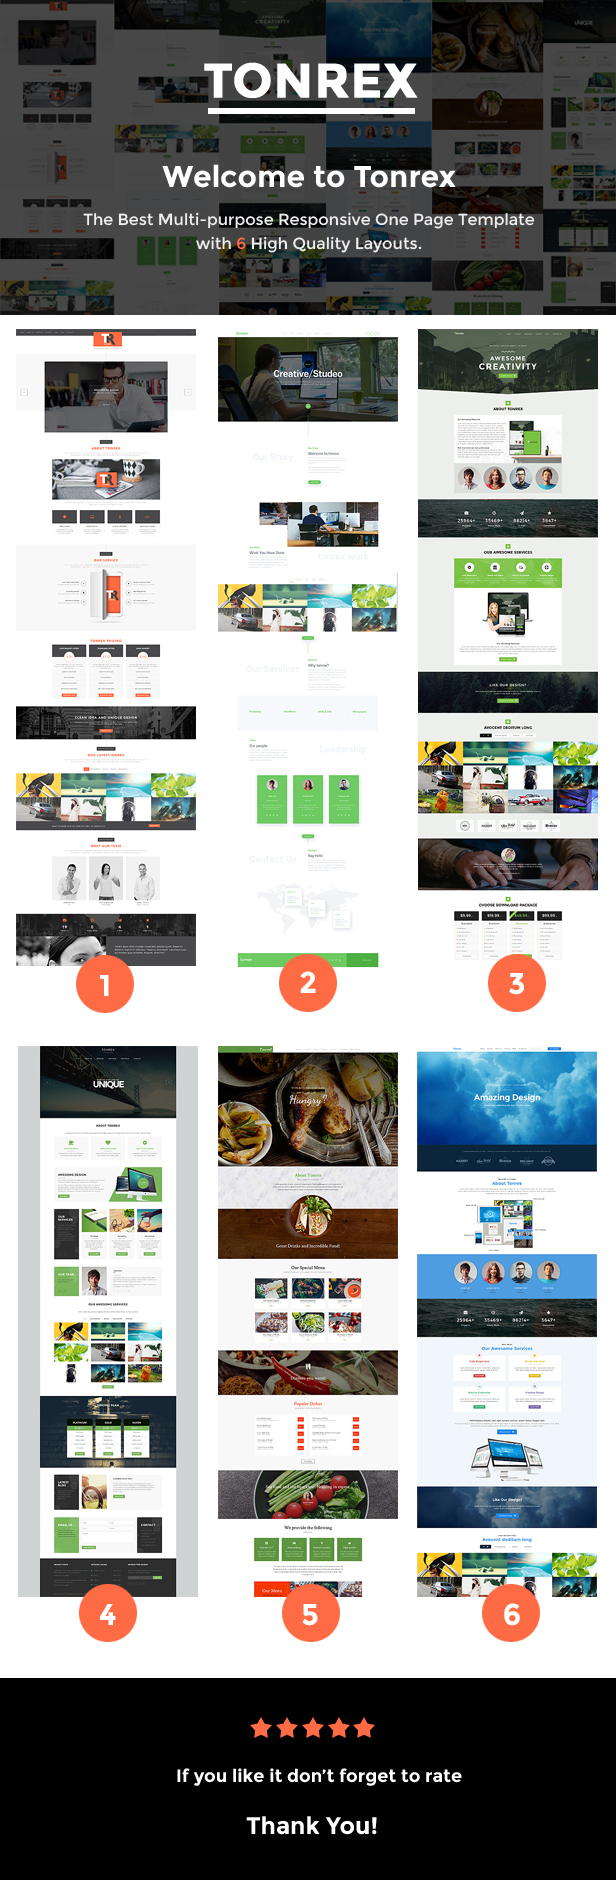 Tonrex onepage responsive template